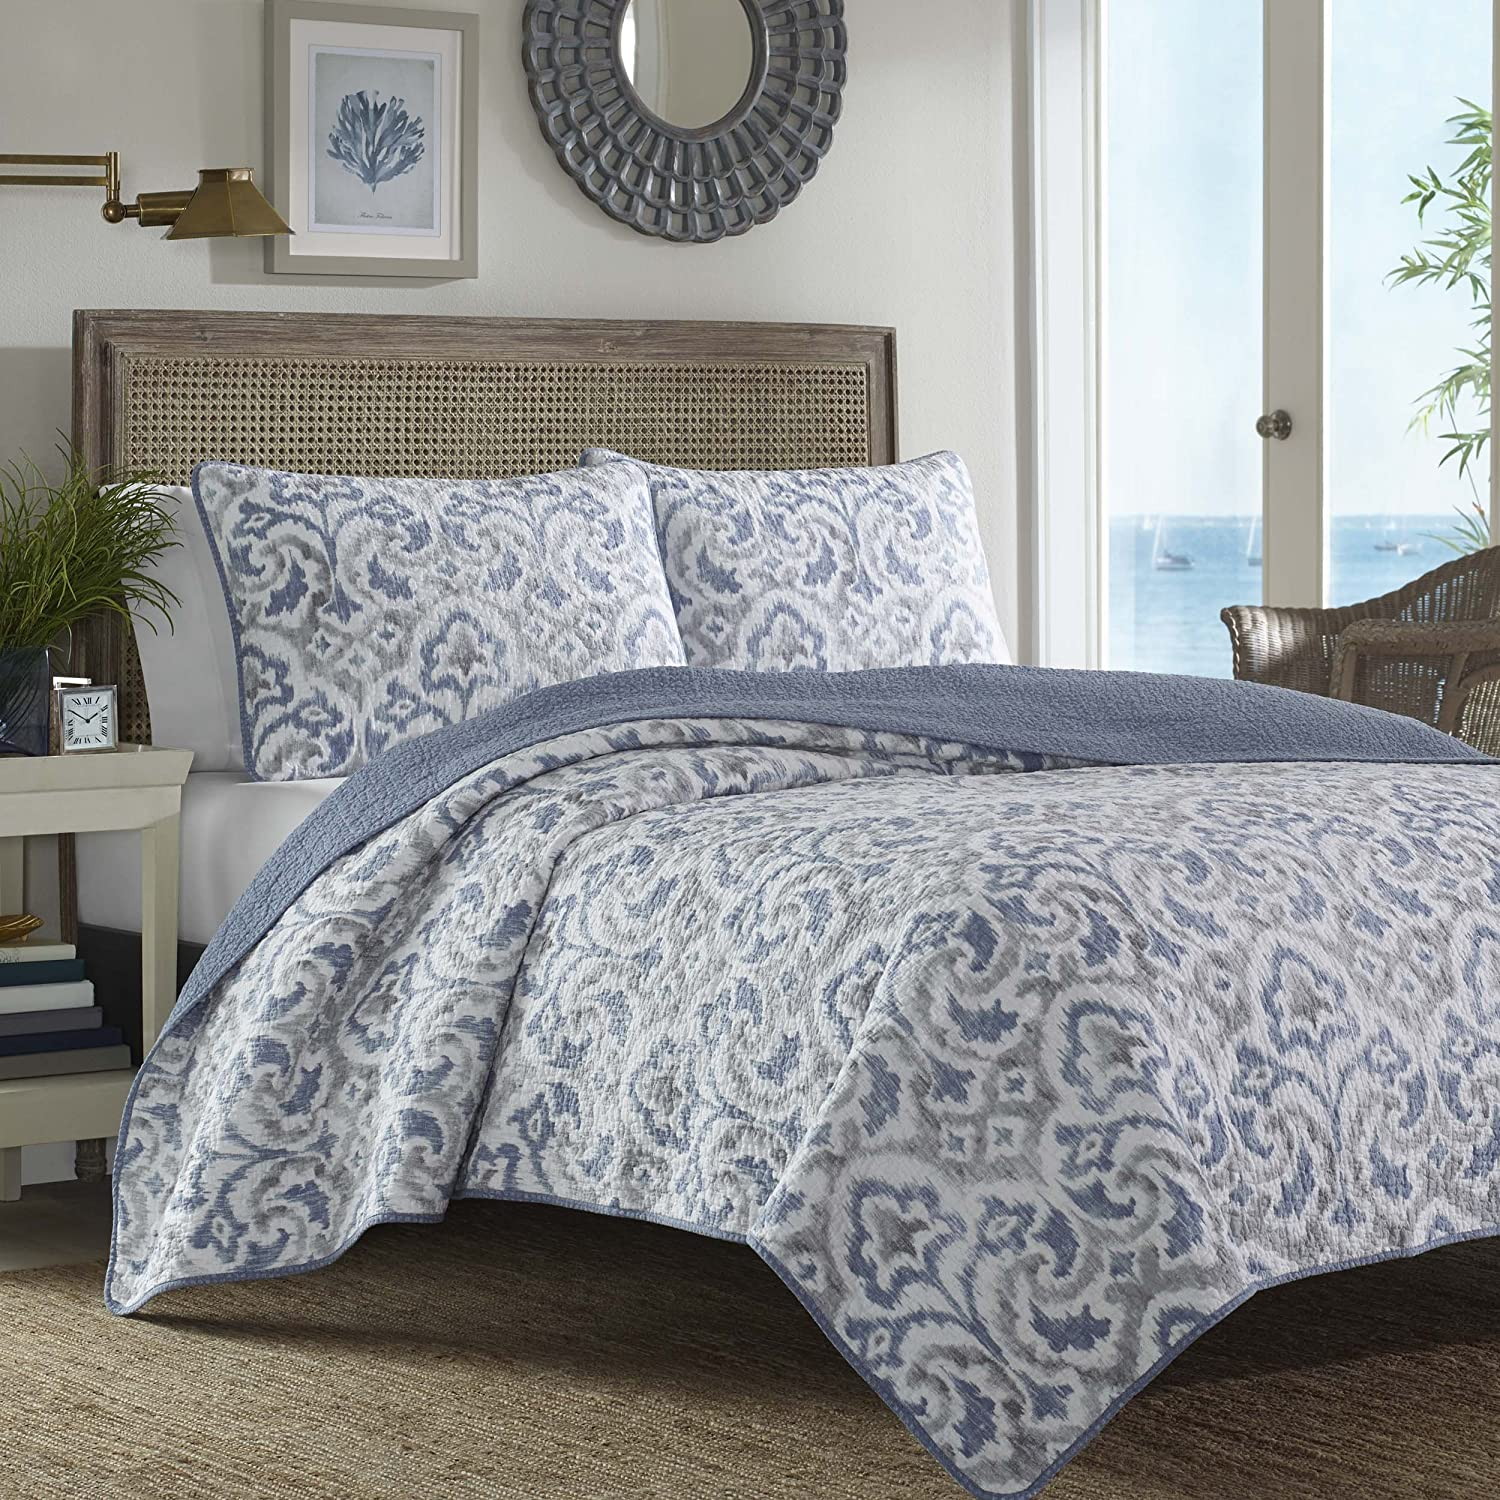 amazoncom tommy bahama cape verde smoke quilt set king smoke  - amazoncom tommy bahama cape verde smoke quilt set king smoke home kitchen